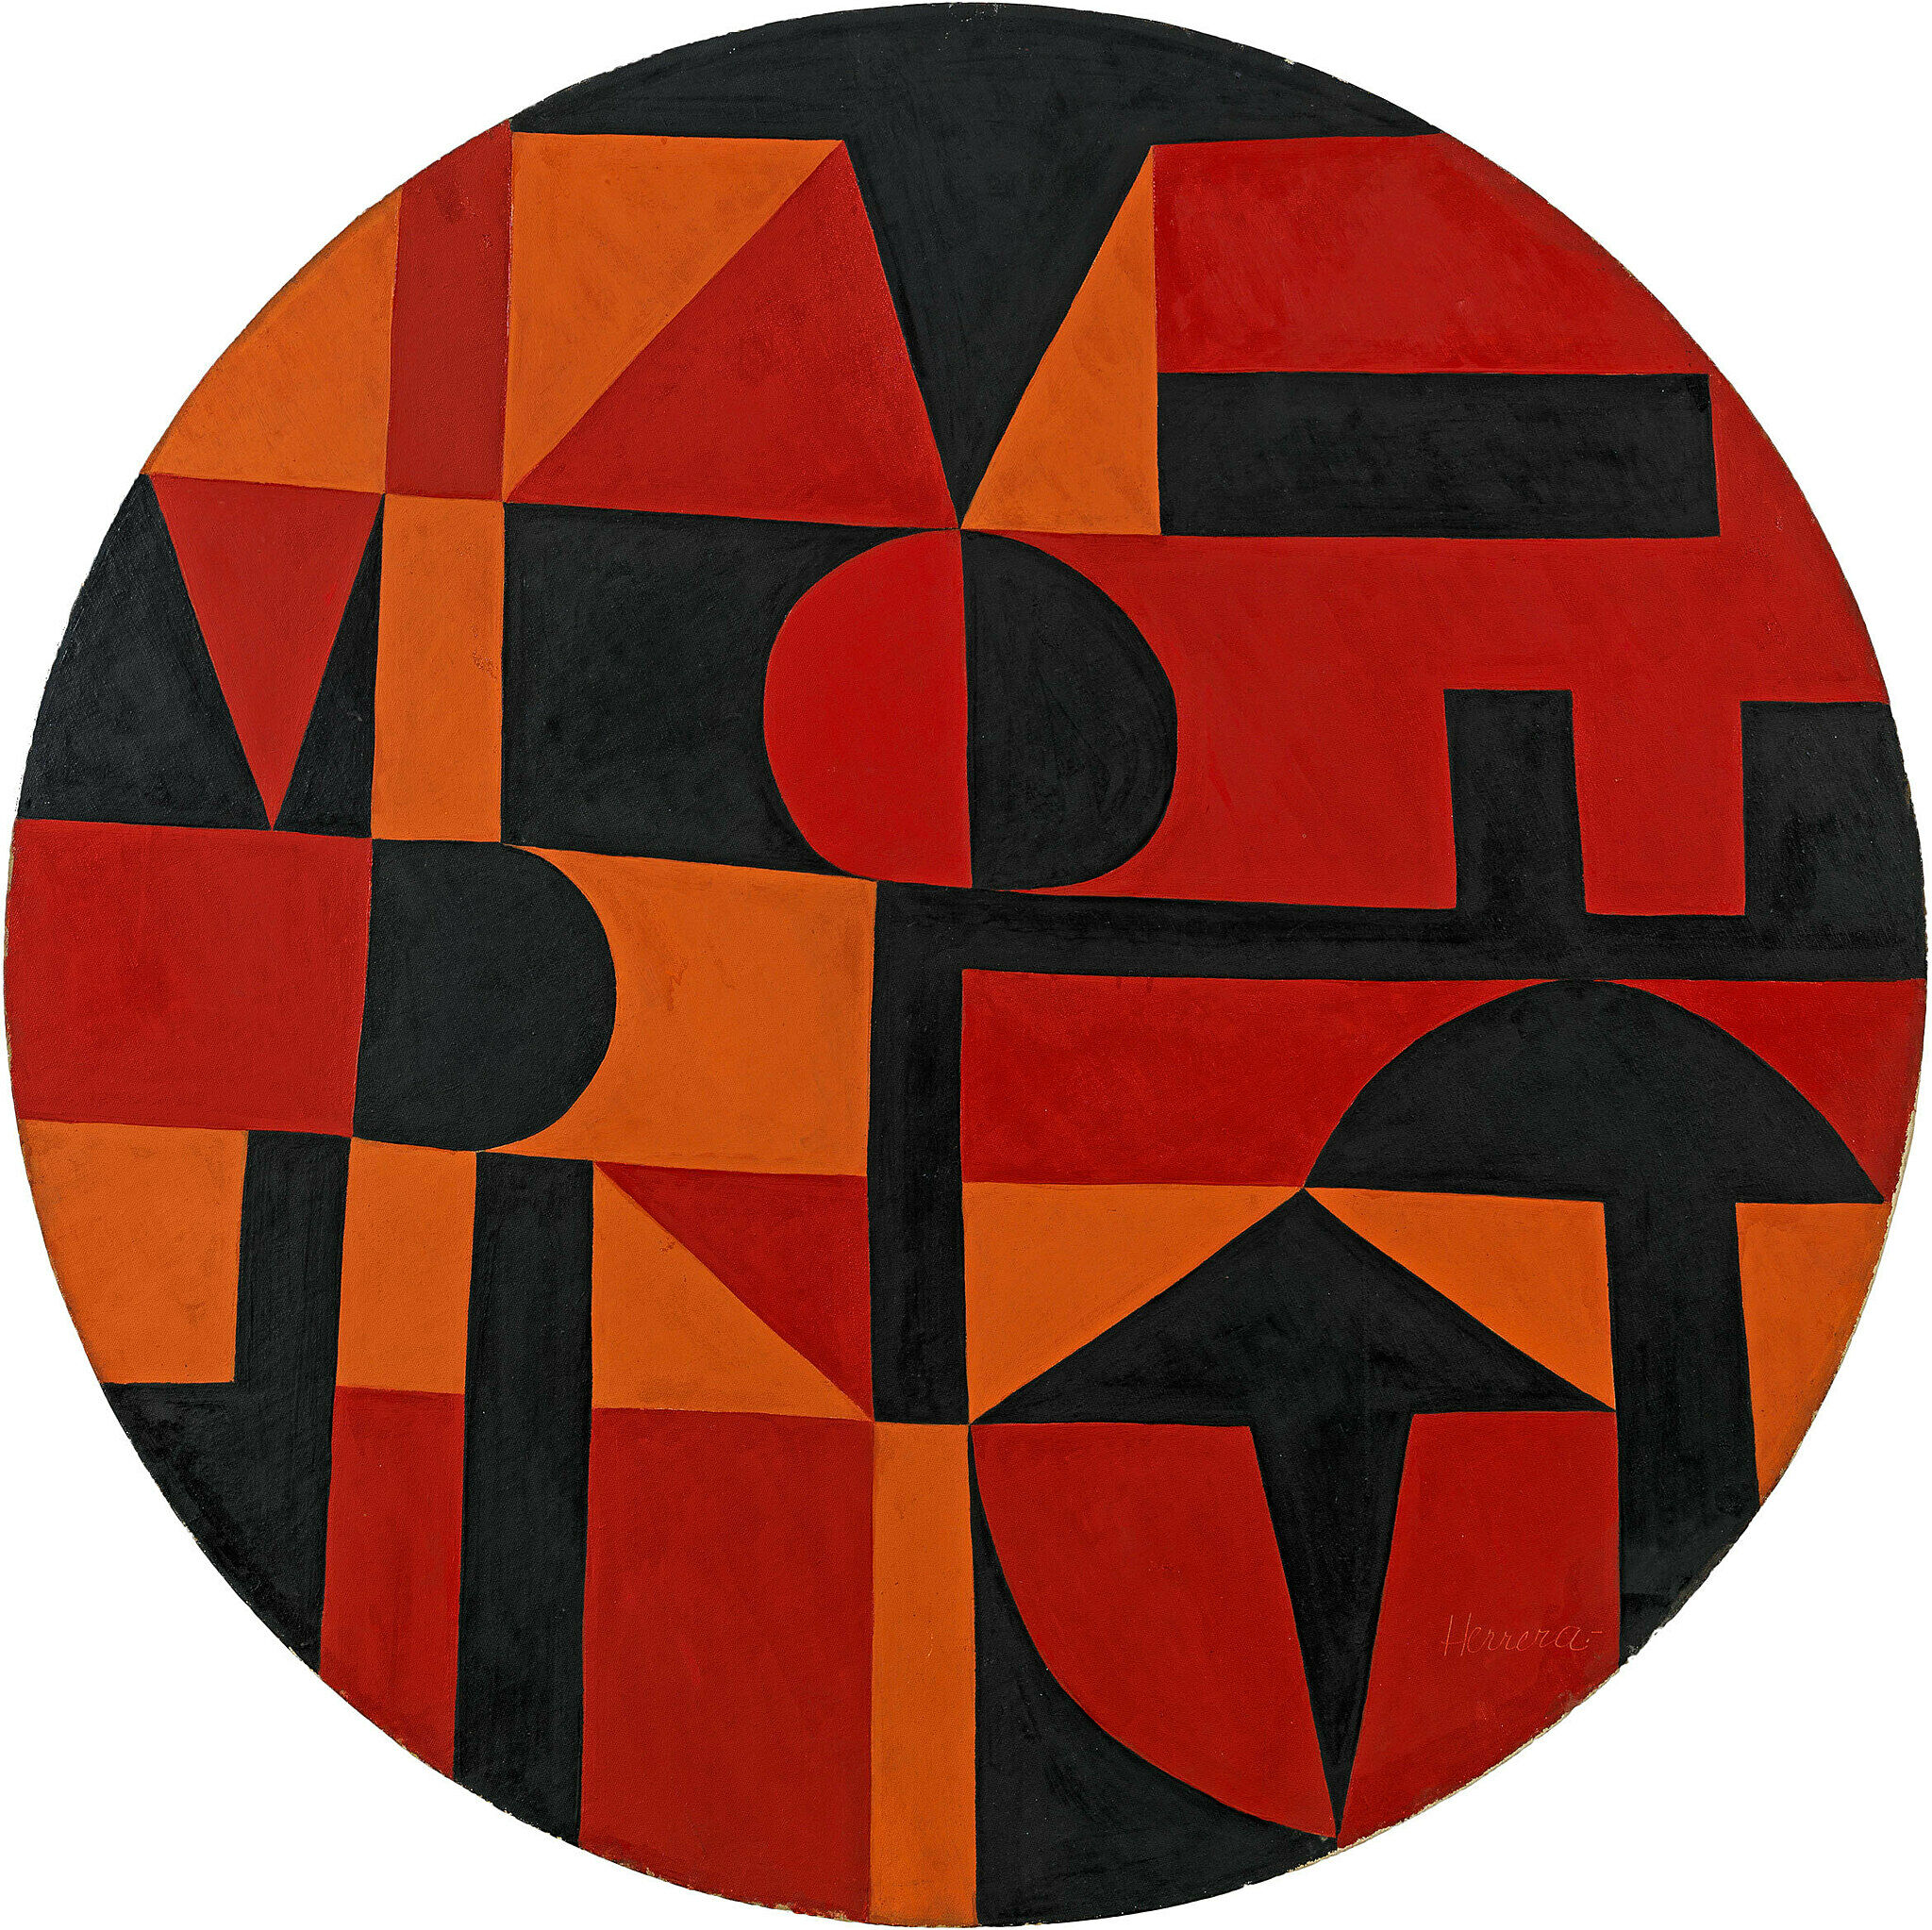 A black, orange and red artwork by Carmen Herrera.